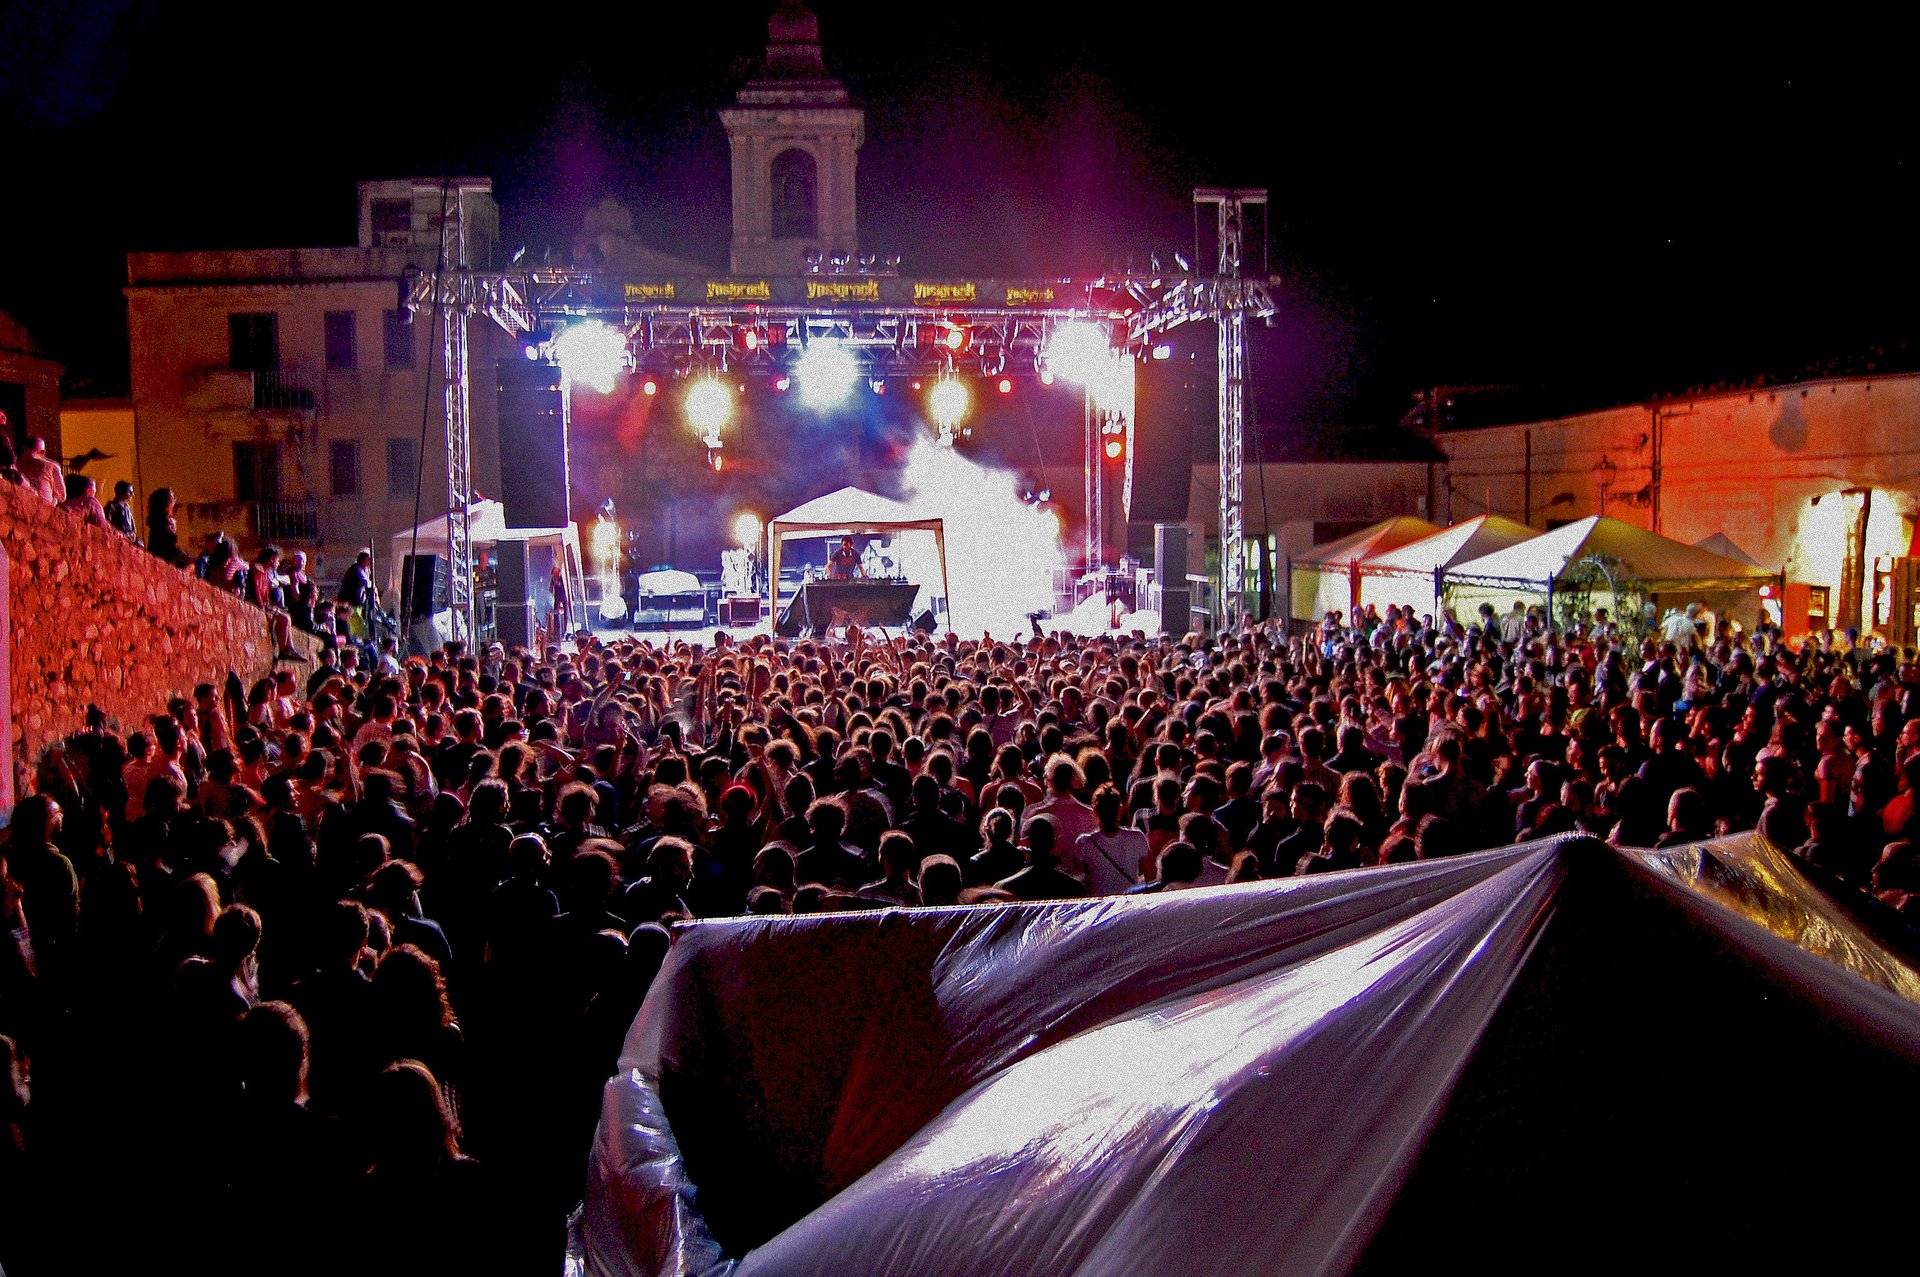 Best time for Ypsigrock Festival in Sicily 2020